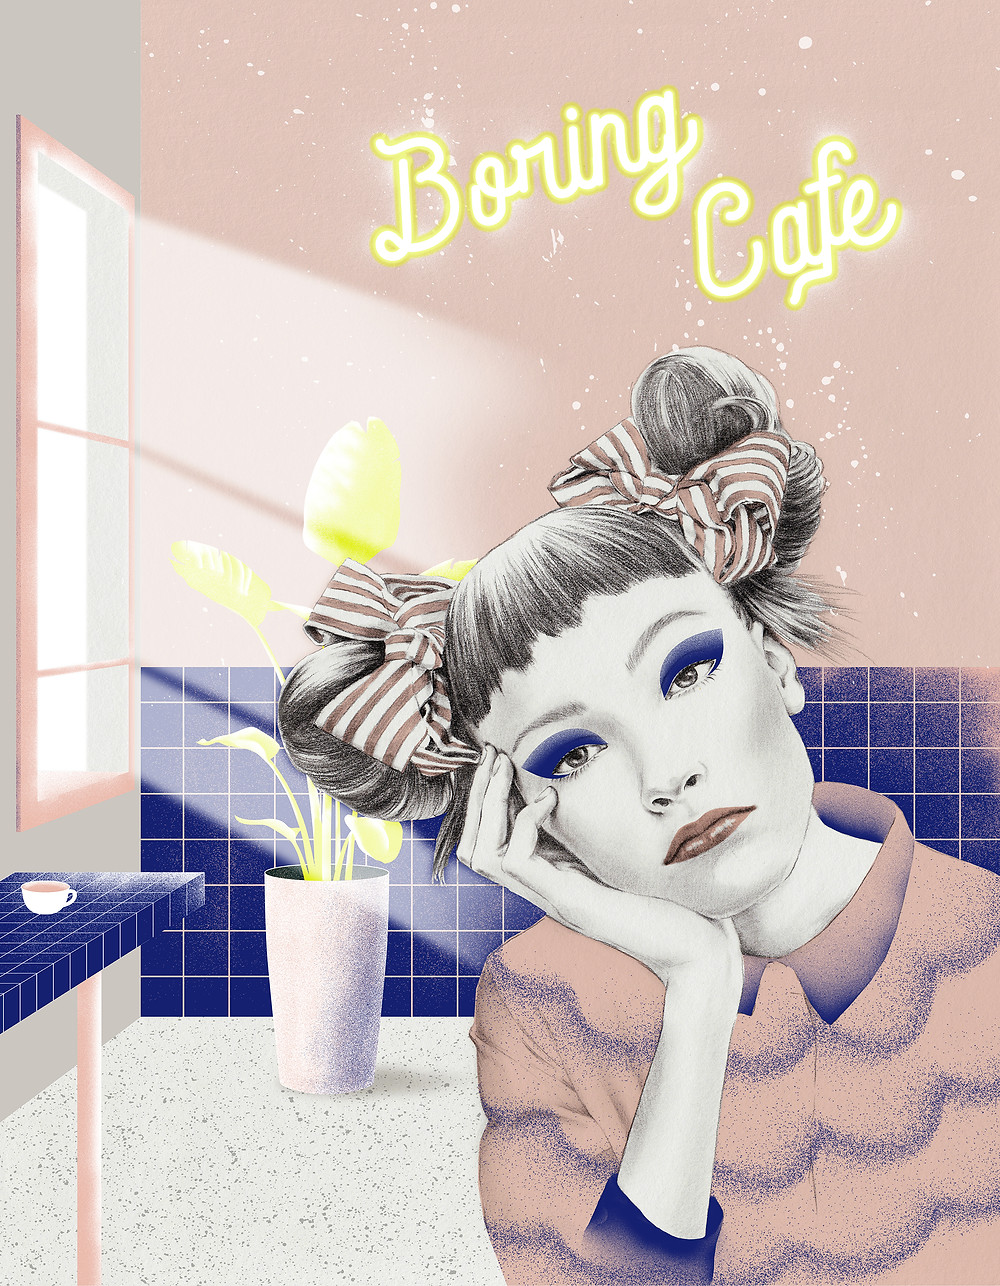 [ Boring Café ] The illustration explores the irony of being discontent in a seemingly perfect surrounding or lifestyle.